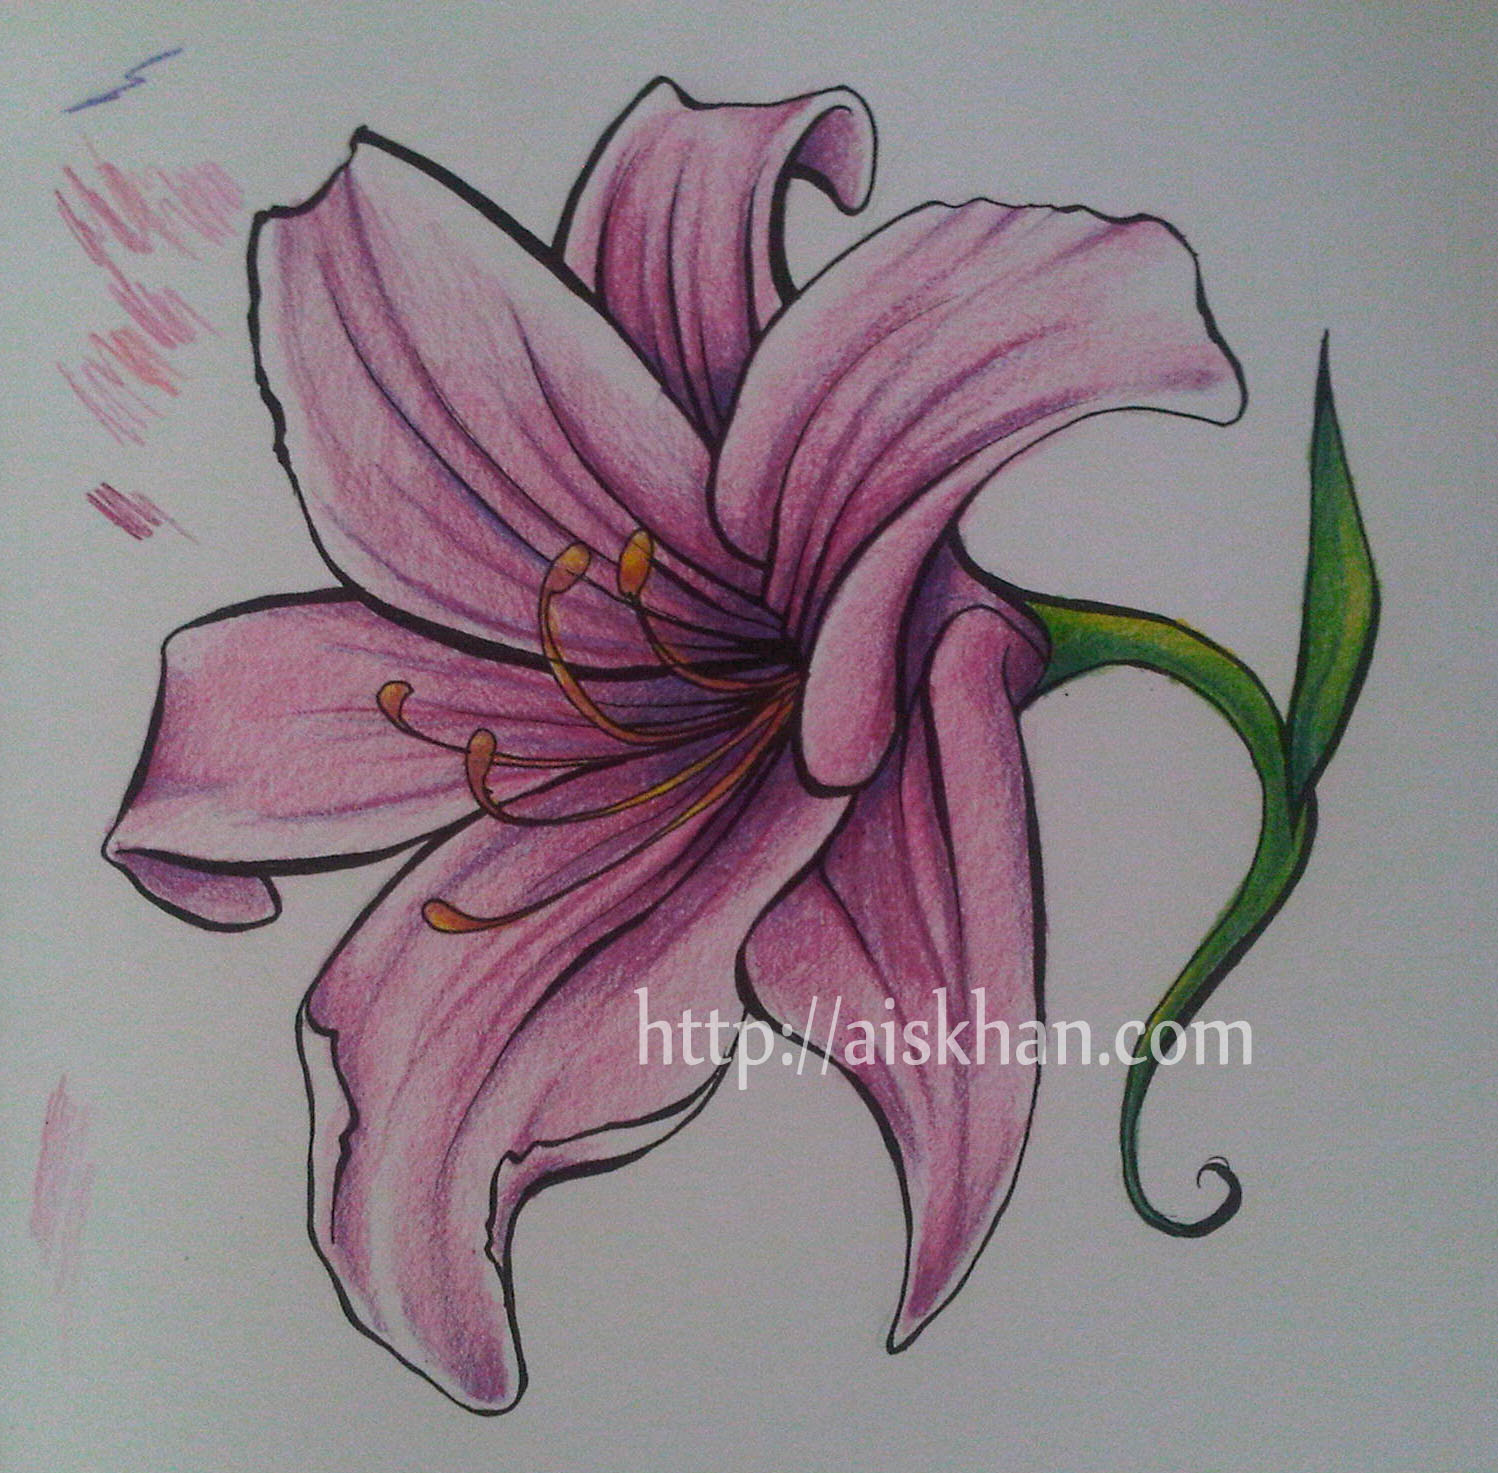 Uncategorized Drawing Of Lily lily ayesha khan